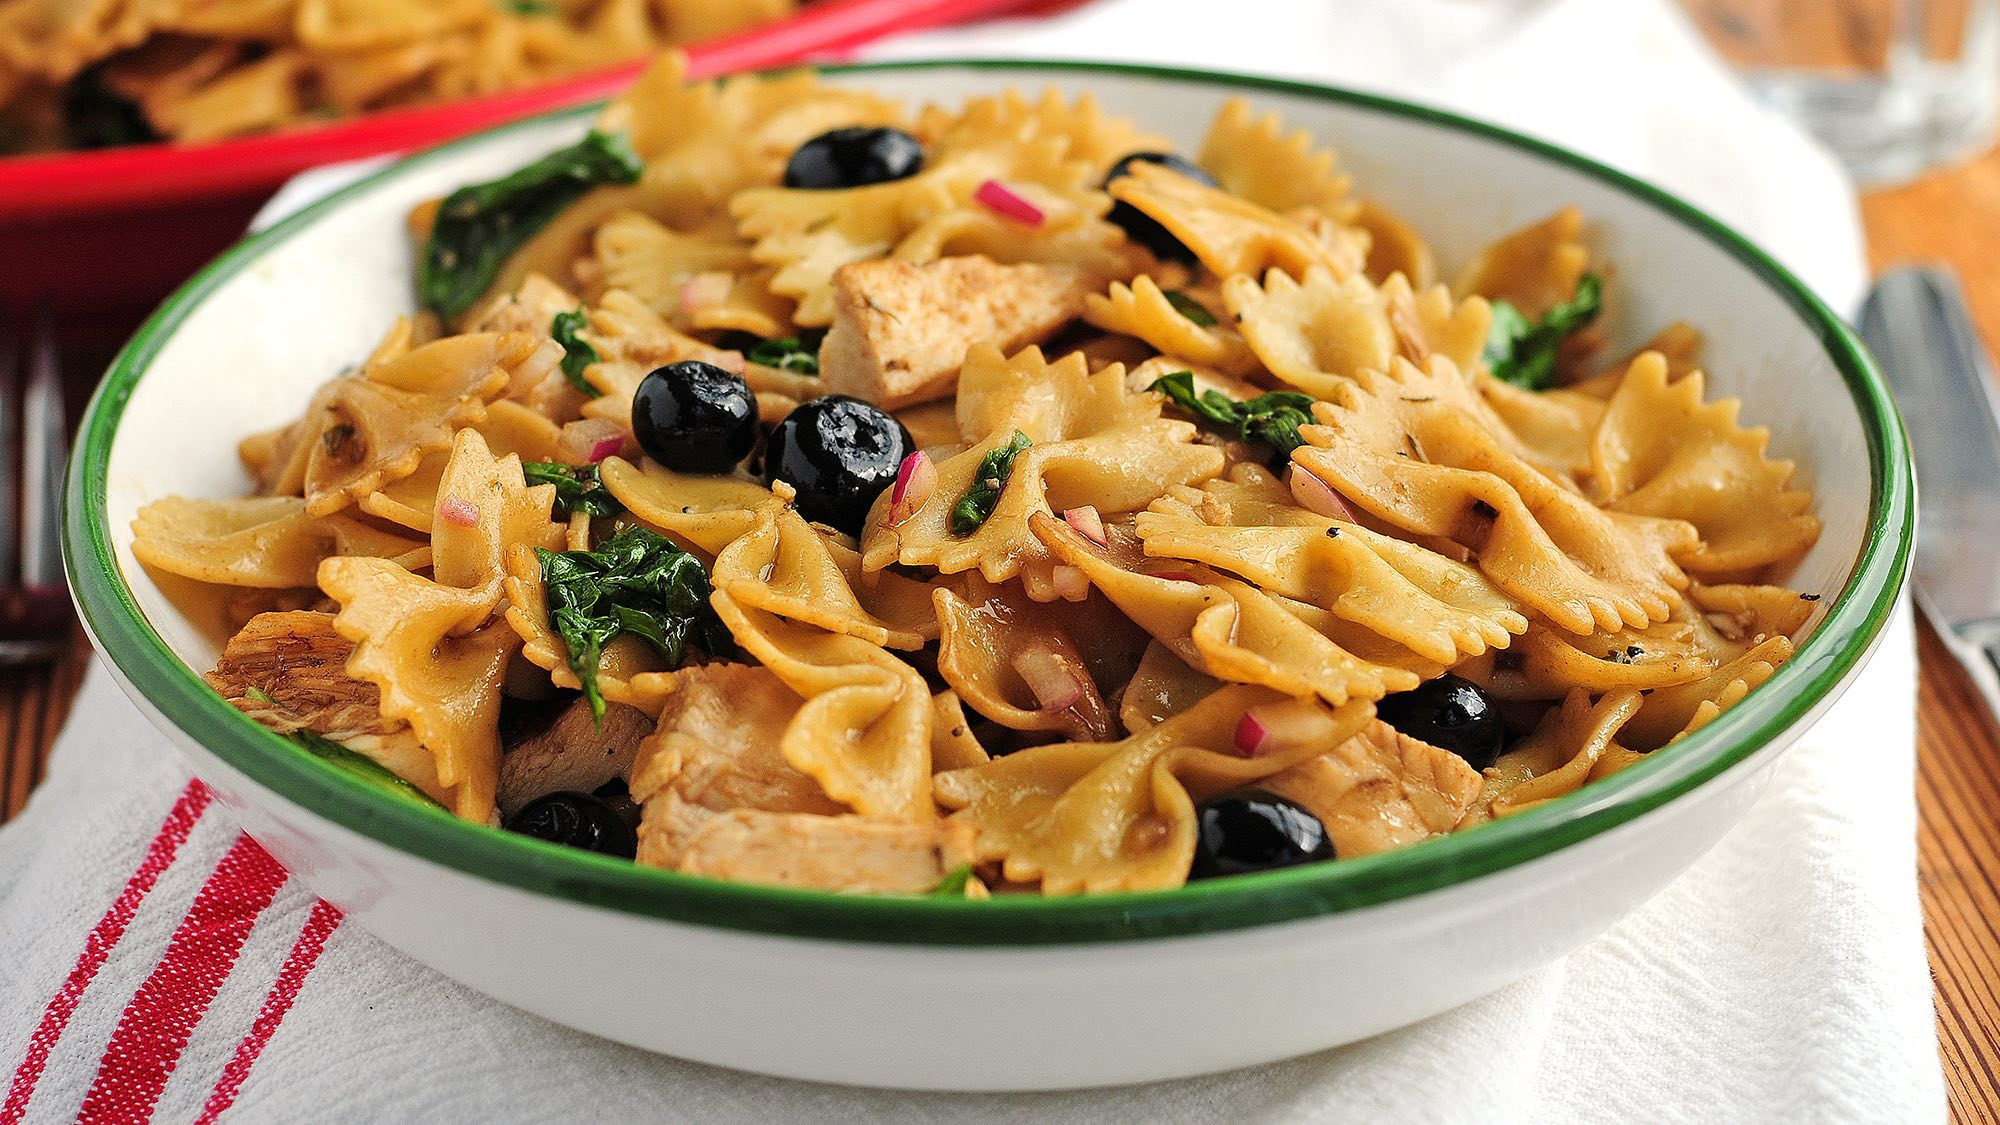 grilled-chicken-and-blueberry-pasta-salad-she-wears-many-hats.jpg